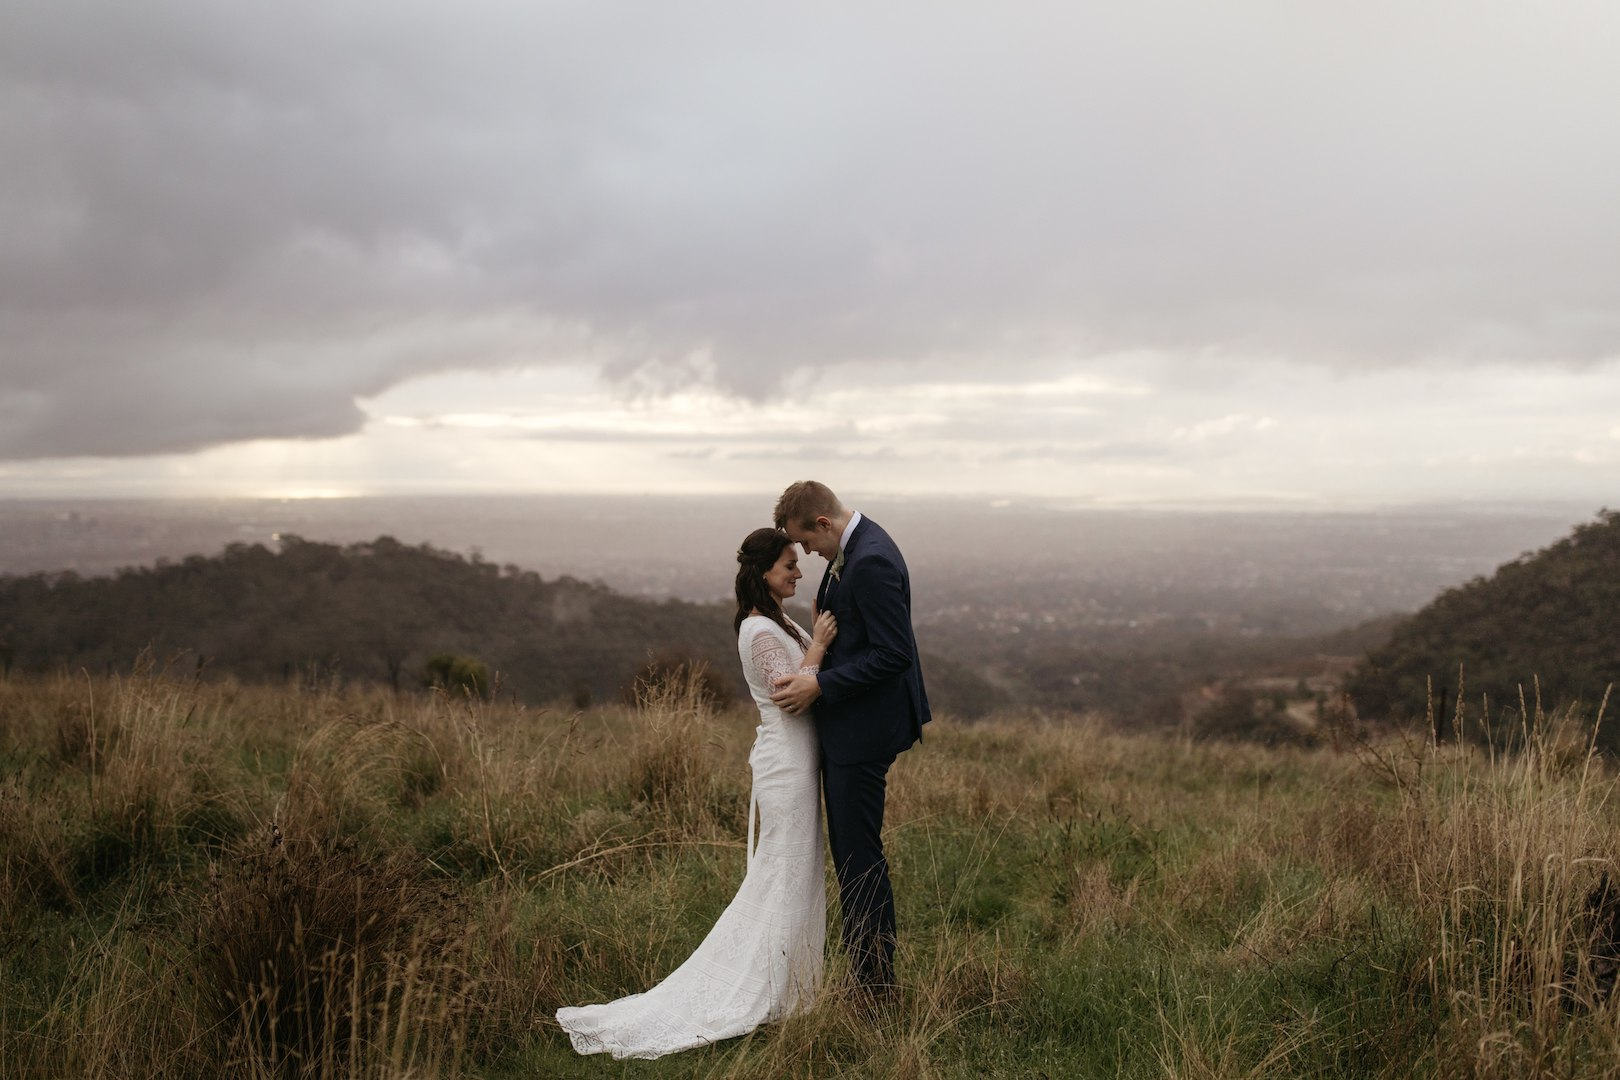 Emma+James-260 resize.jpg